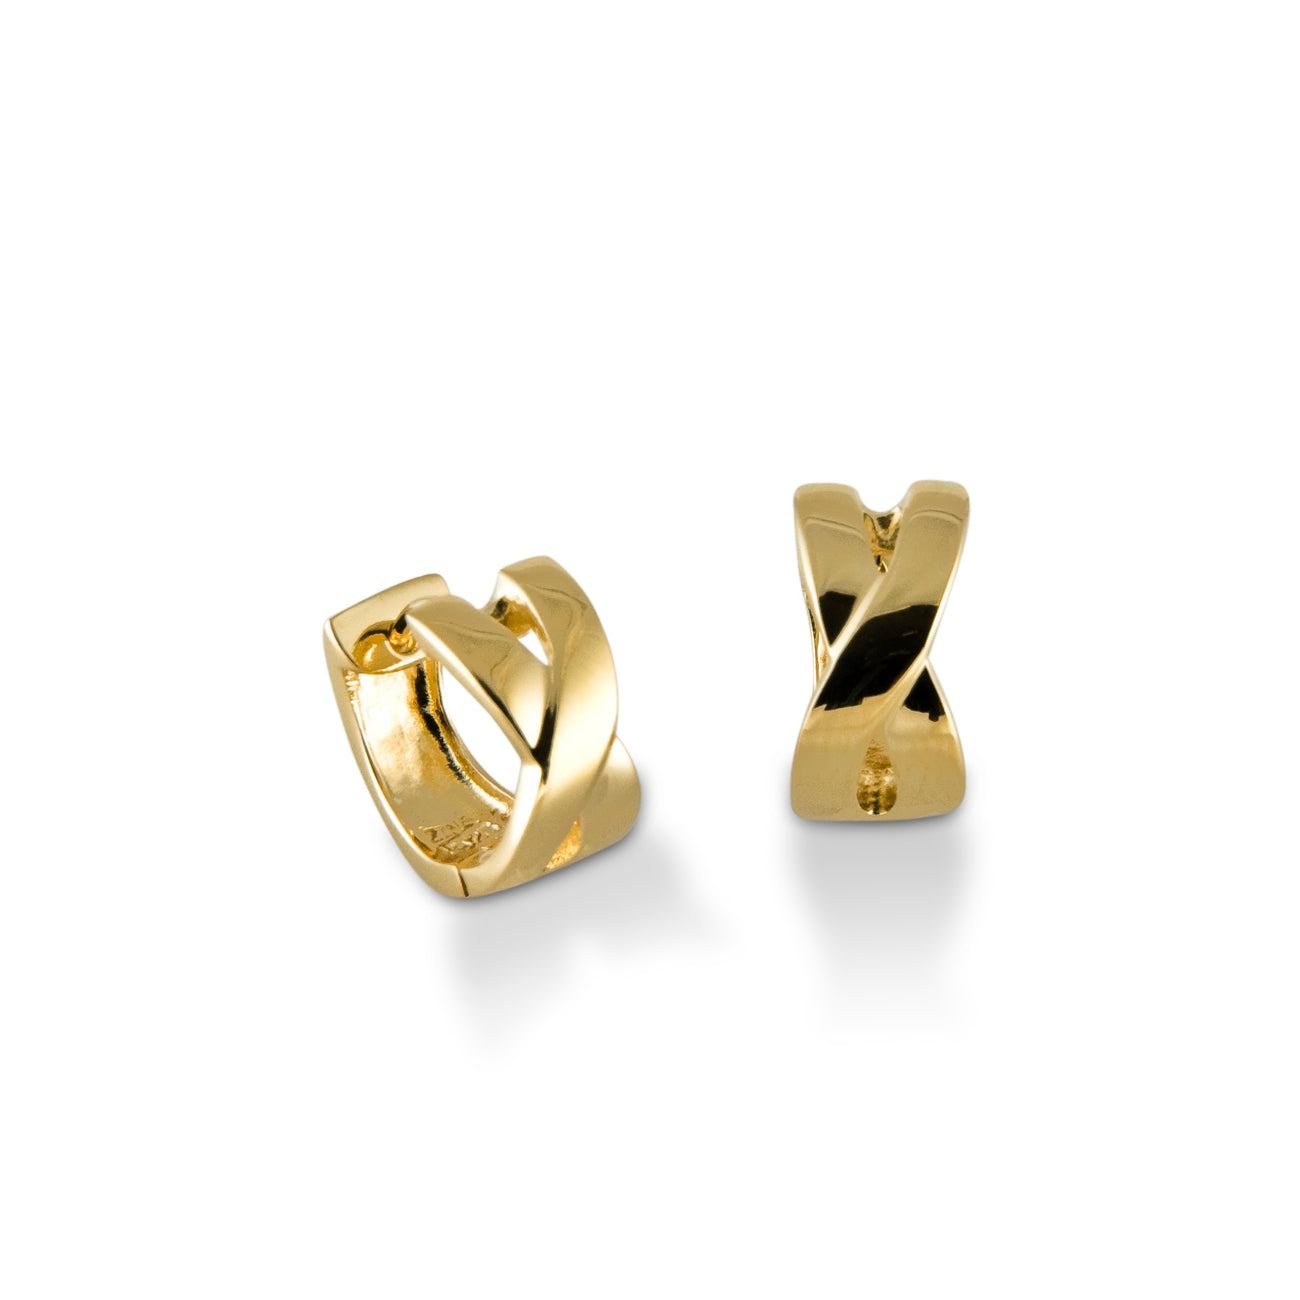 X Huggie Hoop Earrings, 14K Yellow Gold